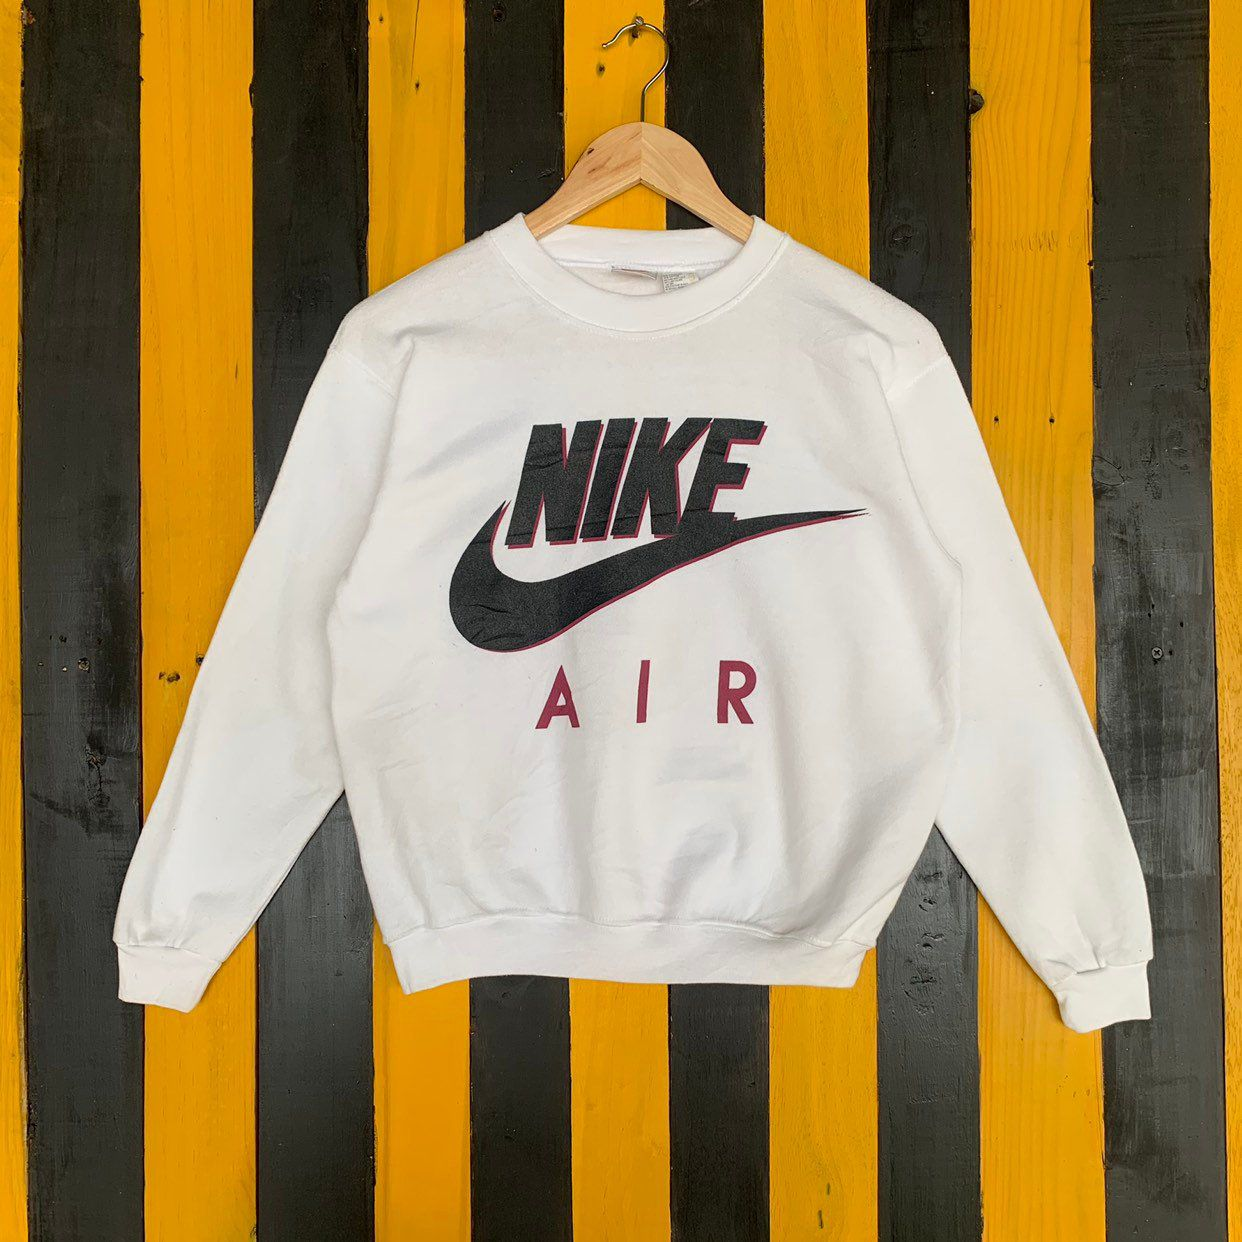 Excited To Share The Latest Addition To My Etsy Shop Vintage 90s Nike Air Big Logo Sweatshirt Jumper Pullover Crewneck Whit Clothes Used Clothing Sweatshirts [ 1242 x 1242 Pixel ]